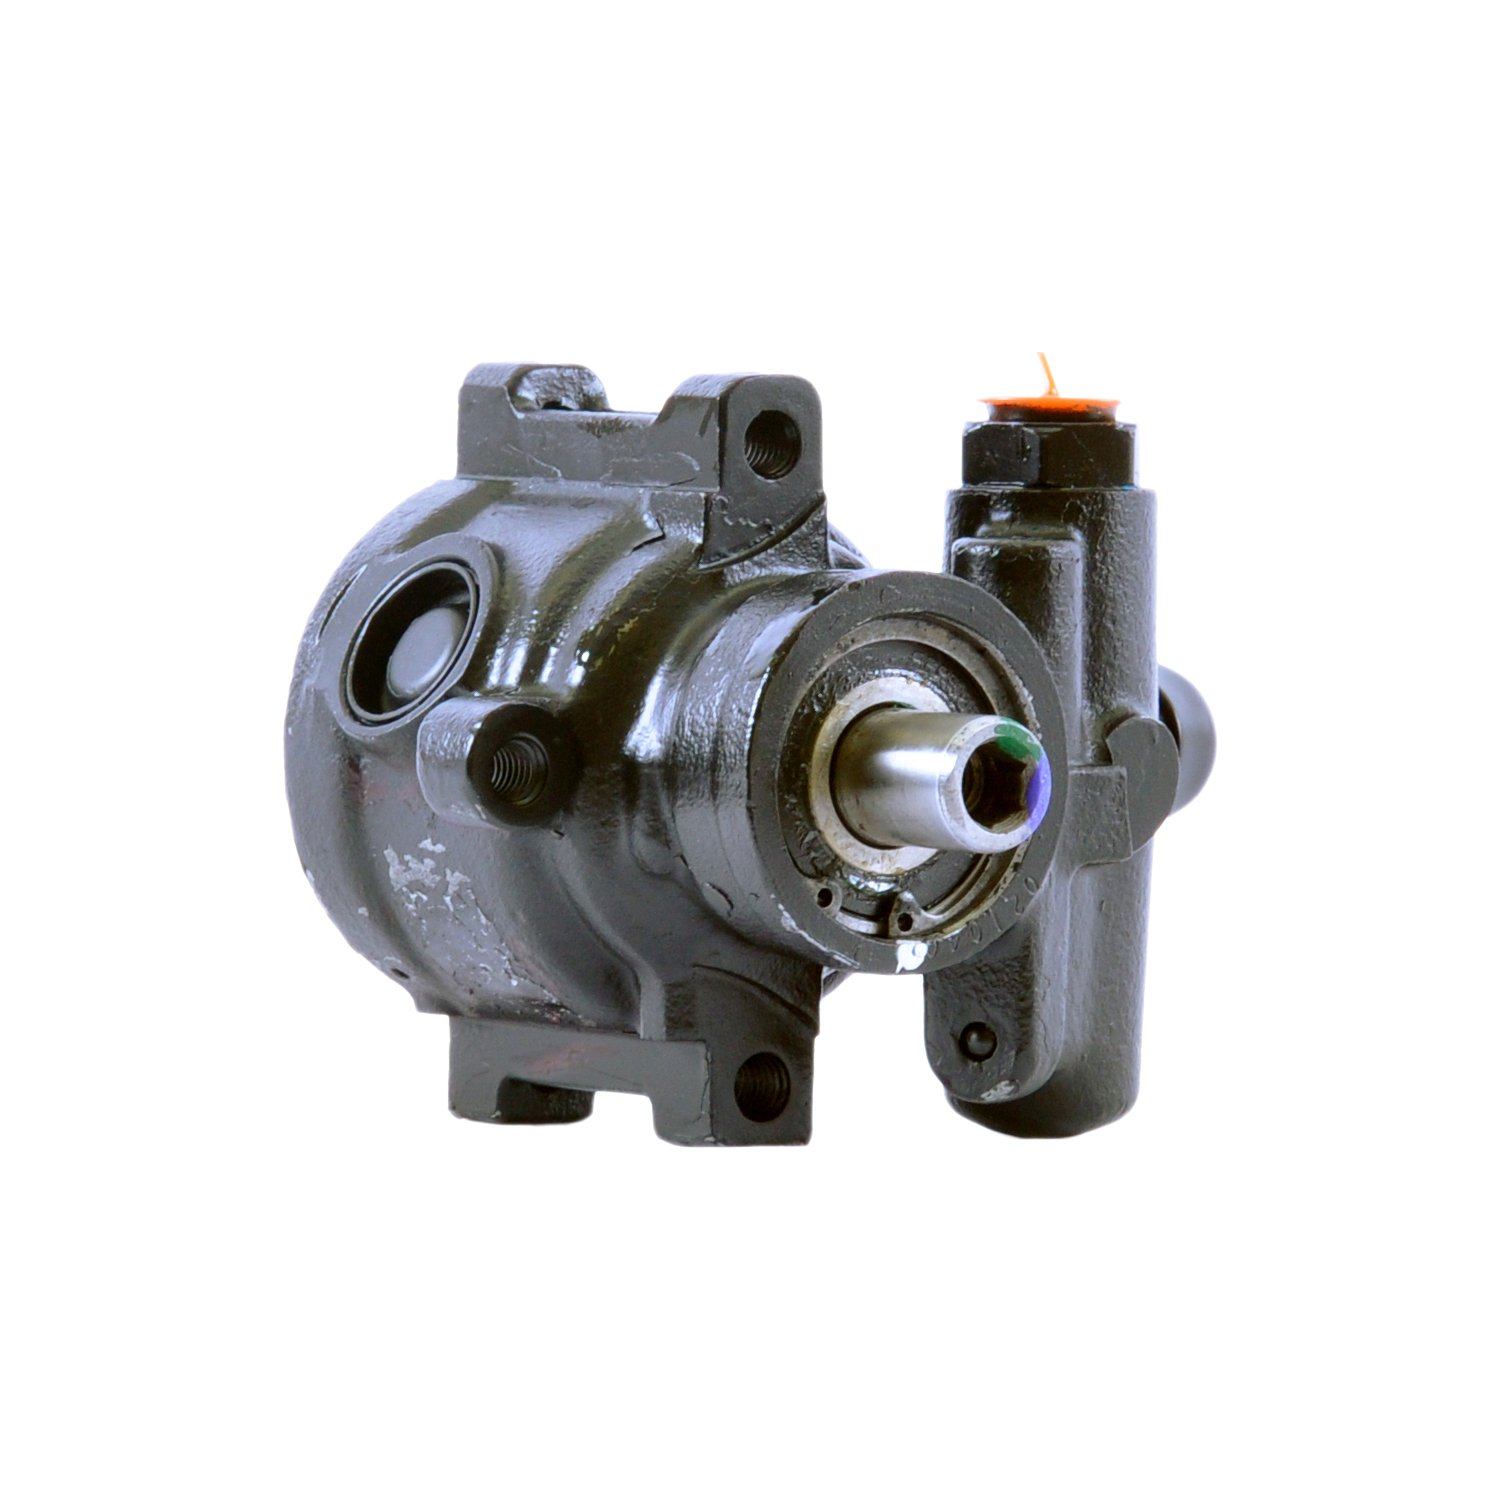 ACDelco 36P0199 Professional Power Steering Pump, Remanufactured